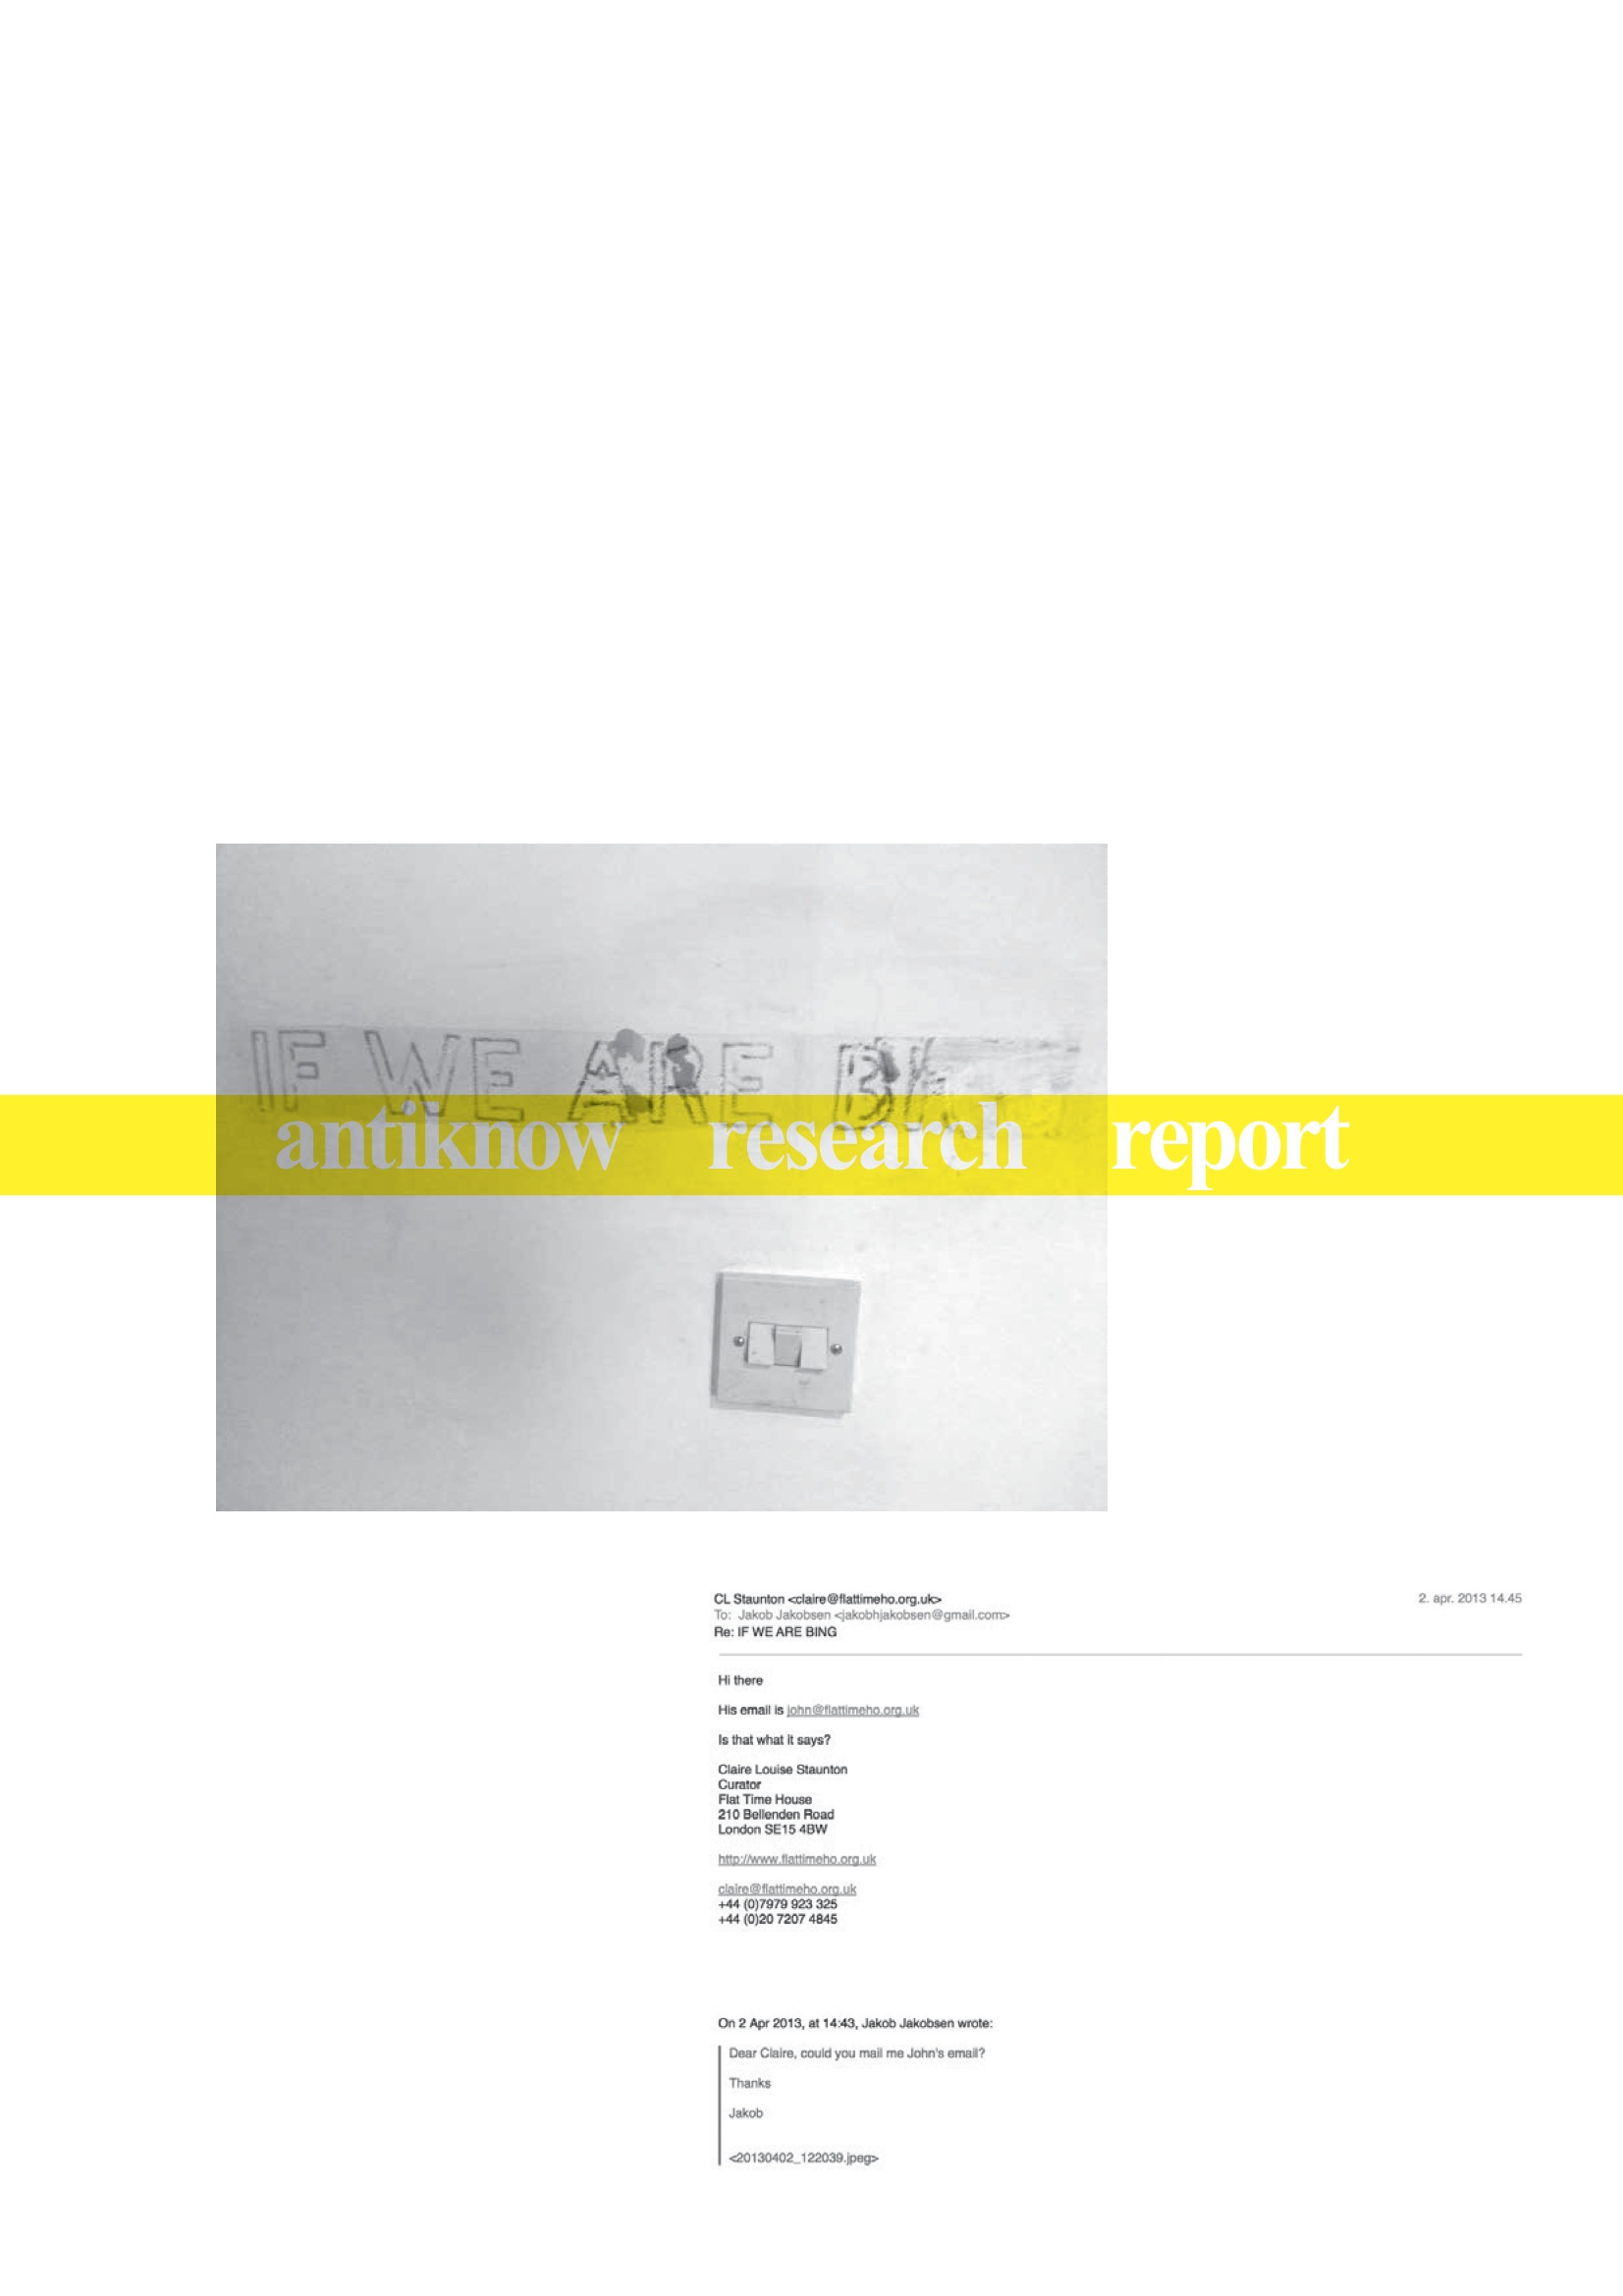 (ANTIKNOW RESEARCH REPORT 3)